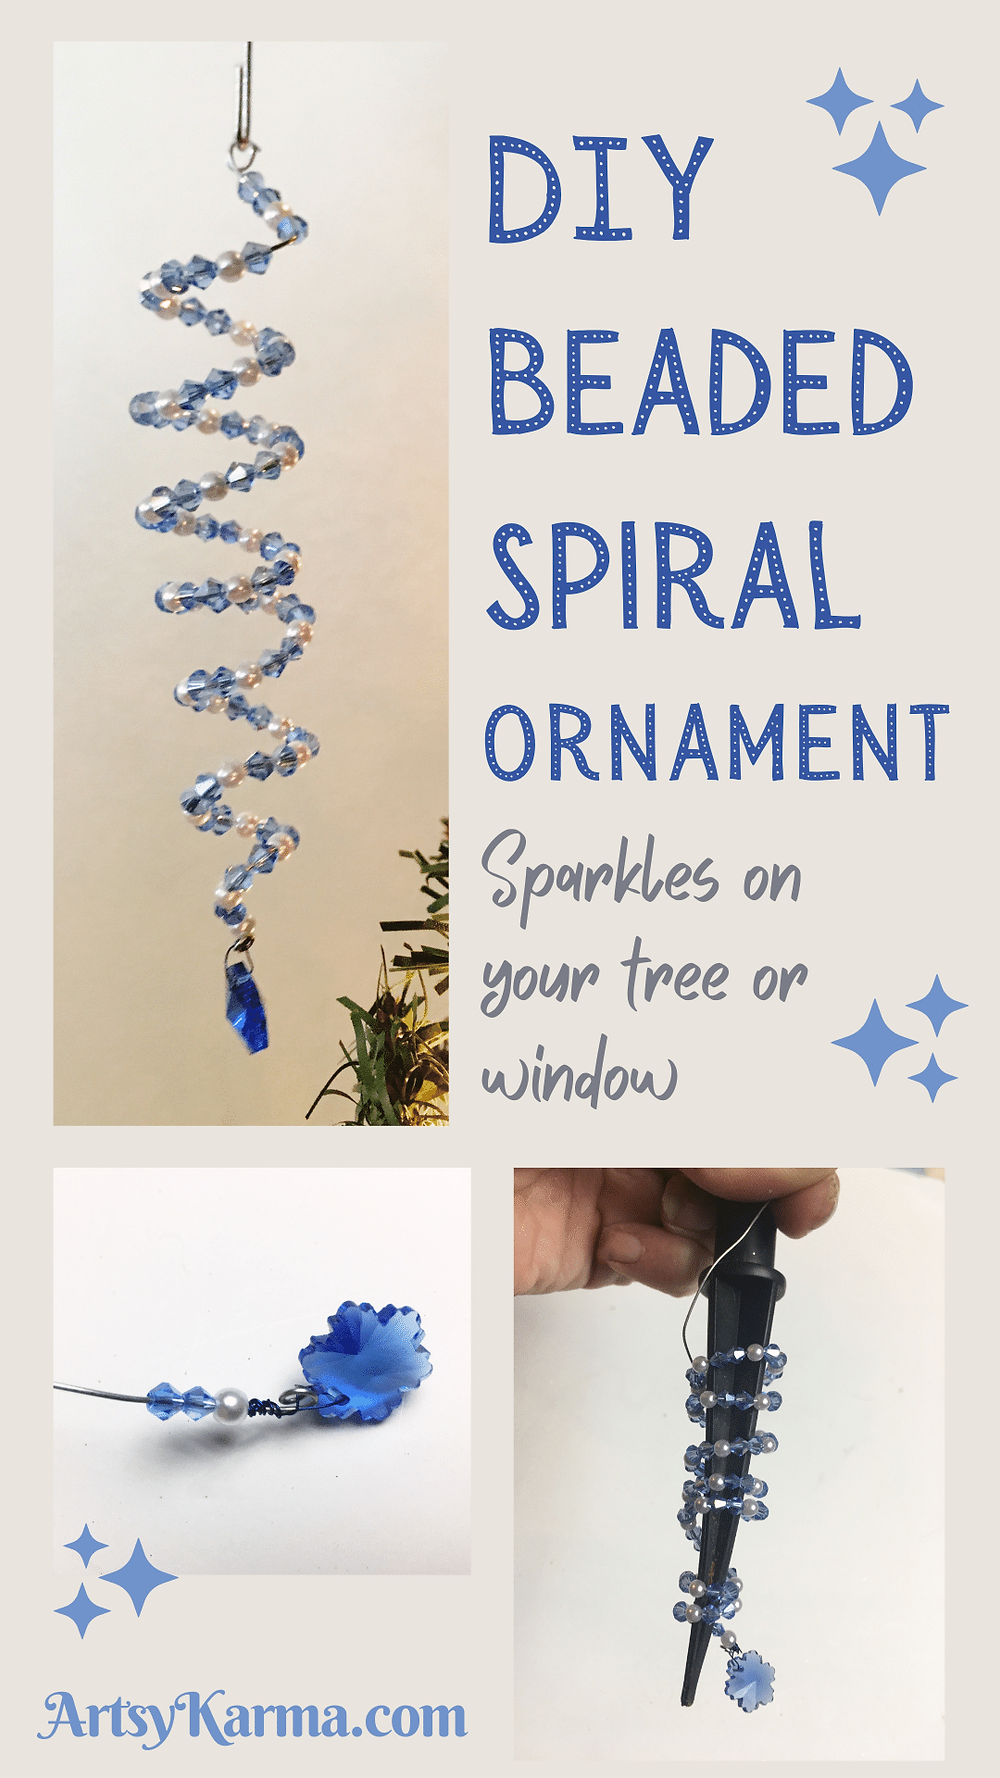 DIY Beaded Spiral Ornament that sparkles on your tree.